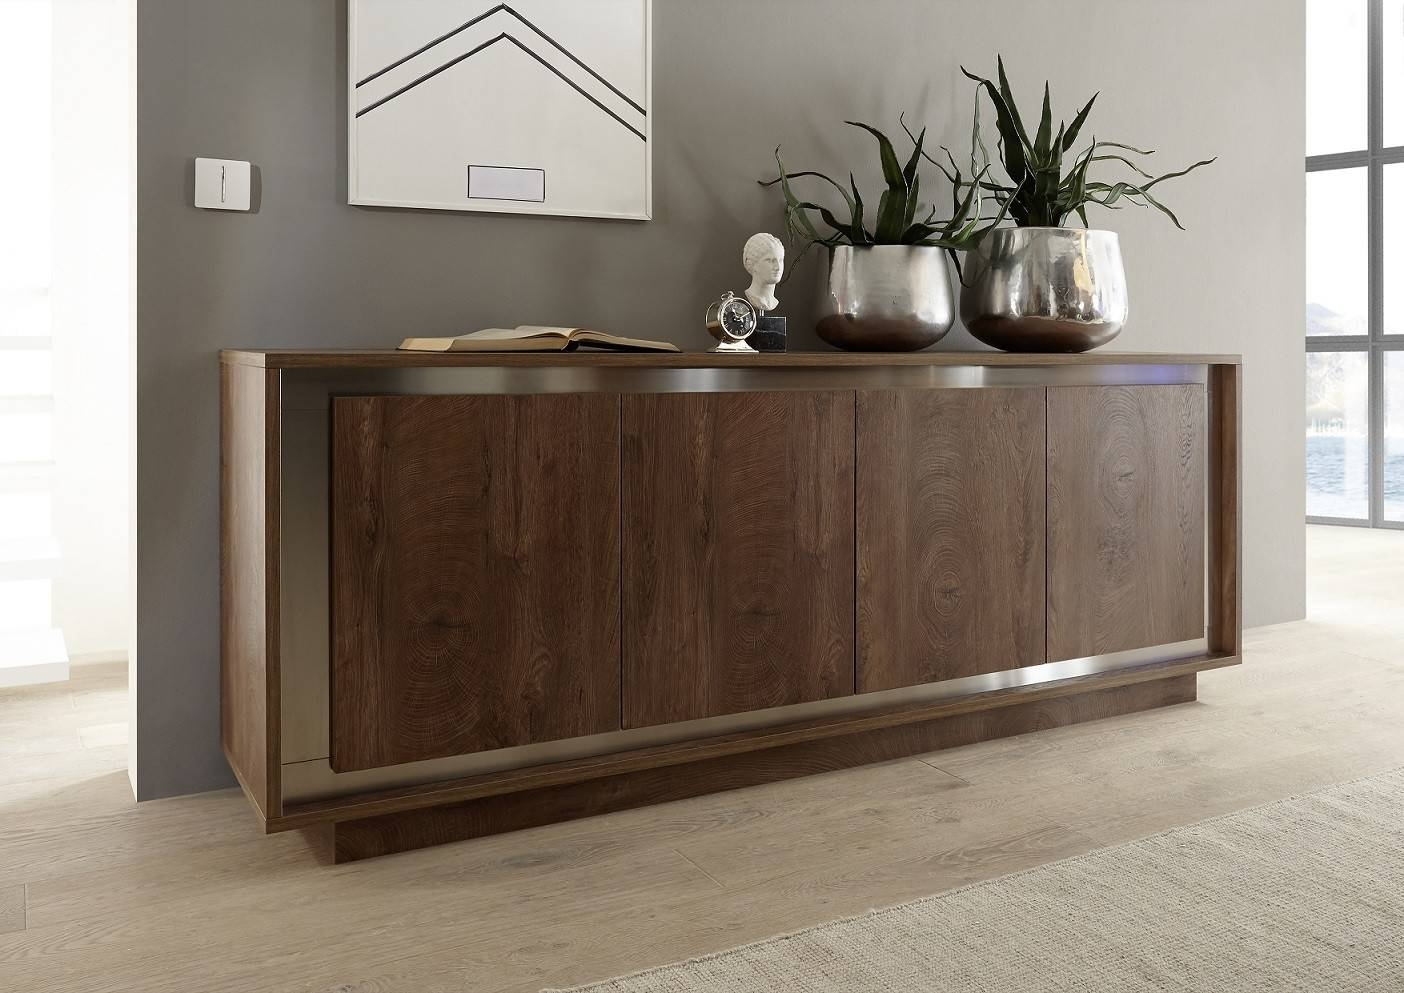 Modern Sideboards Uk – Sena Home Furniture Inside Modern Sideboards Furniture (View 7 of 20)